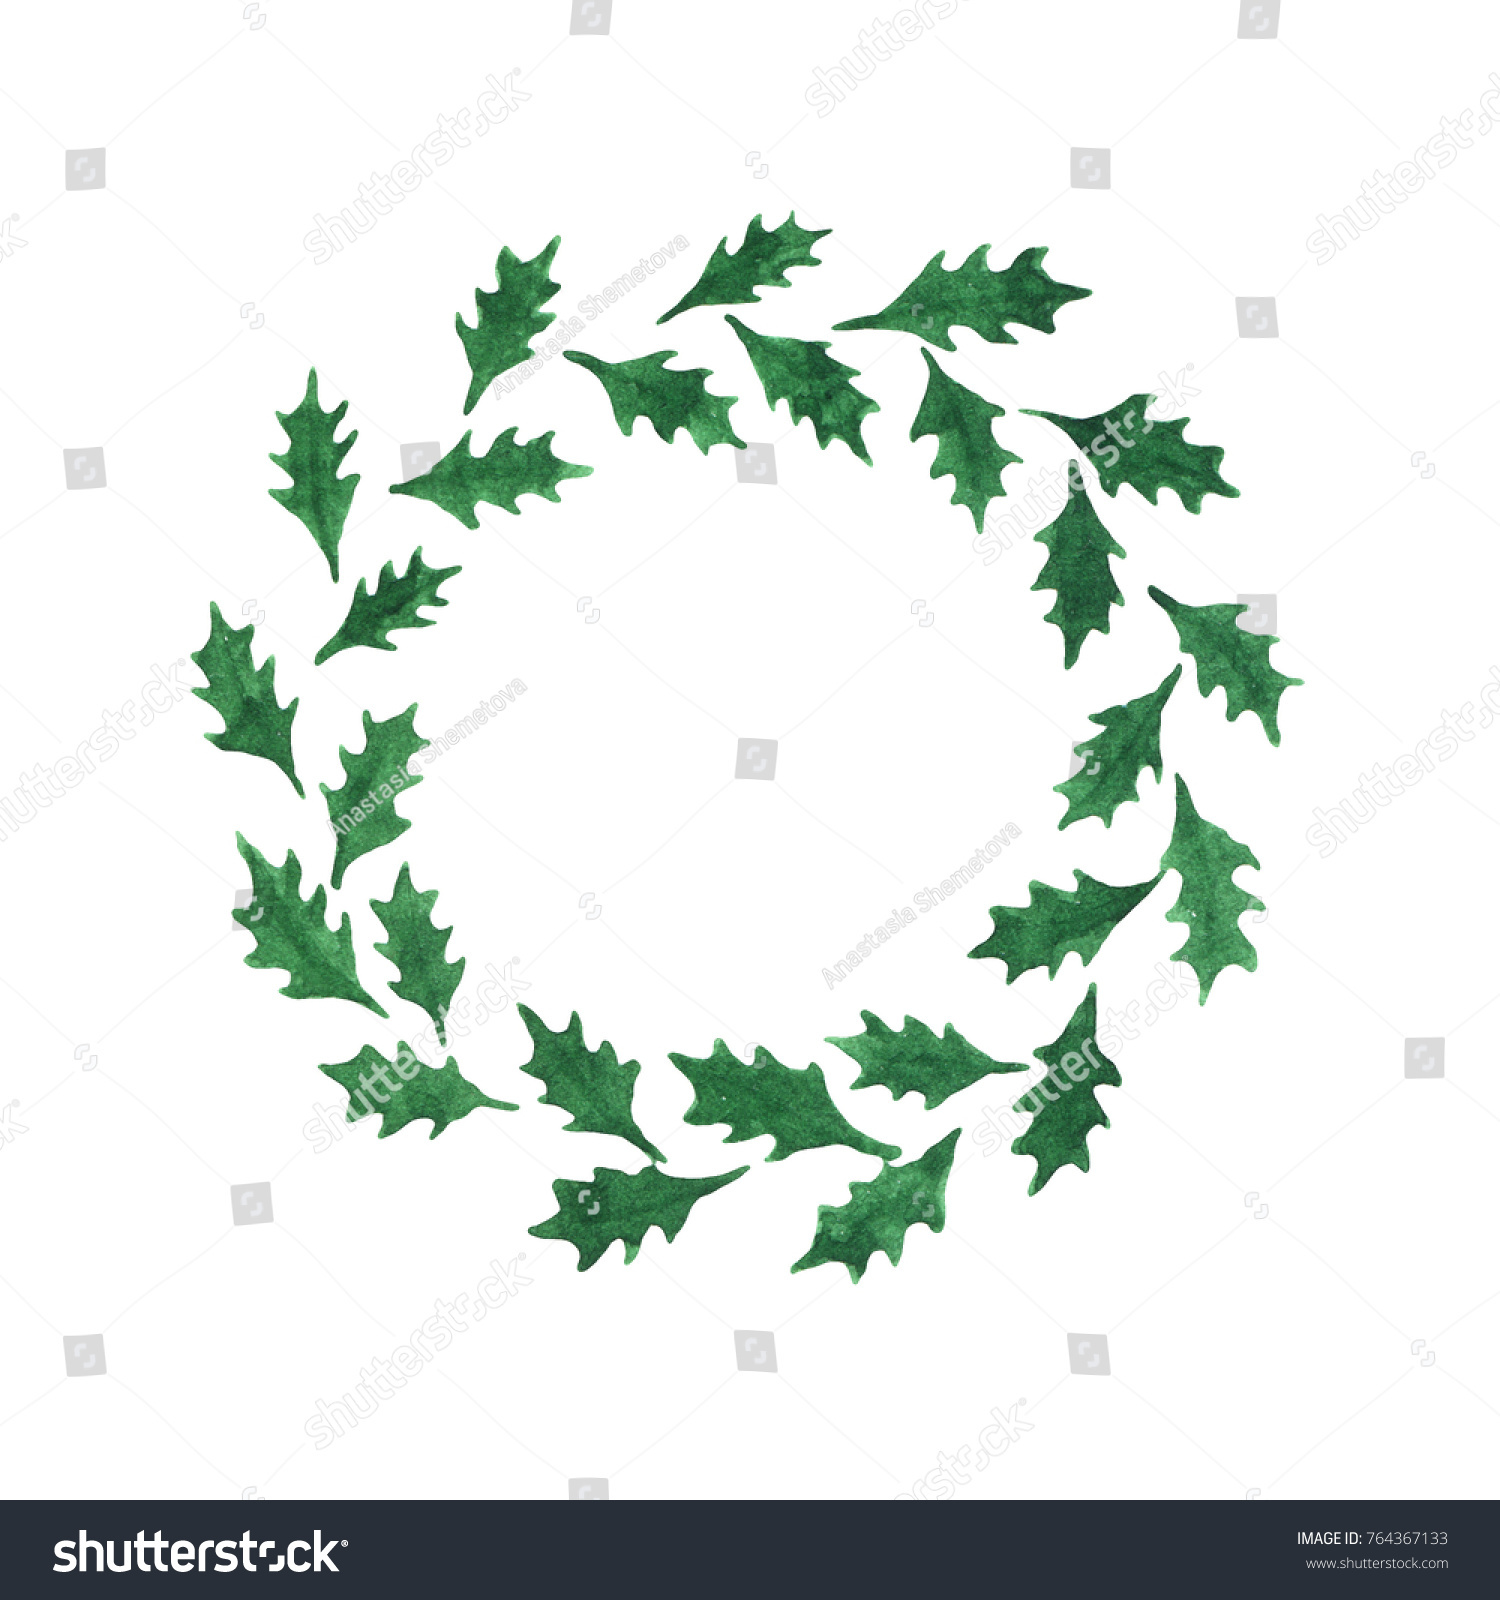 Royalty Free Stock Illustration Of Abstract Watercolor Holly Leaves